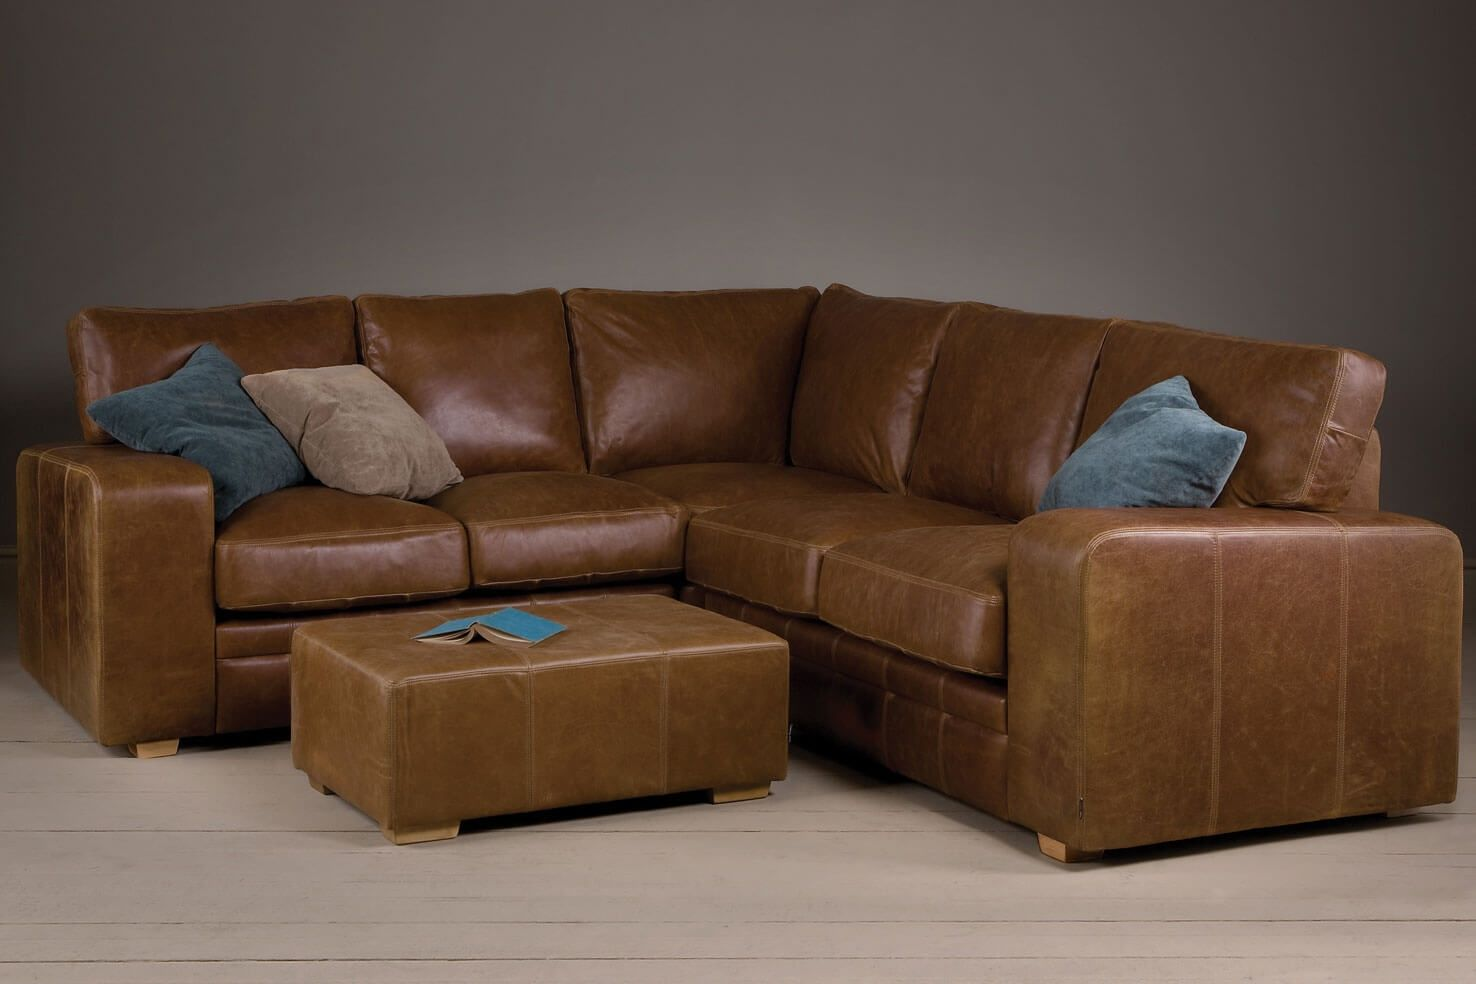 awesome Leather Corner Sofa , Awesome Leather Corner Sofa 80 In Modern Sofa  Inspiration with Leather Corner Sofa , http://sofascouch.com/leather-co